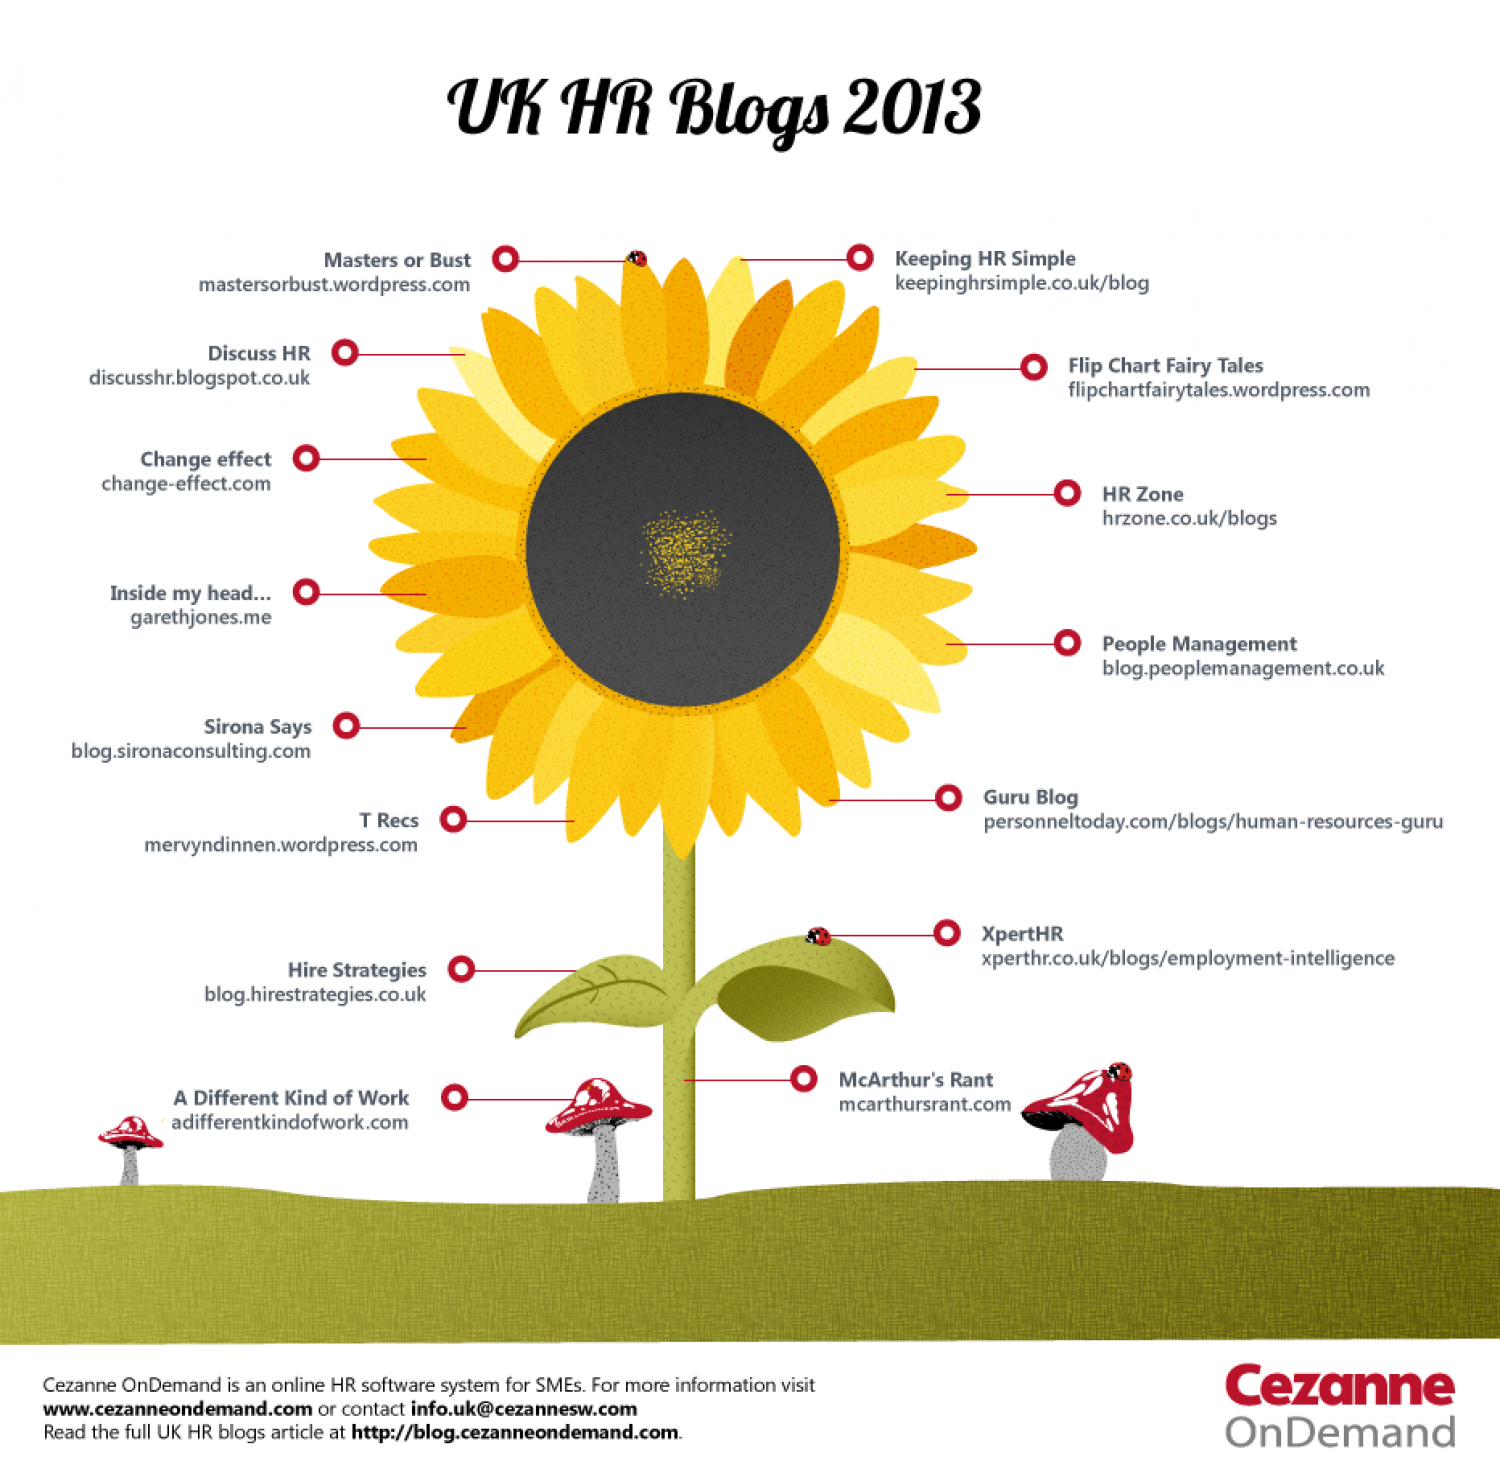 Top UK HR Blogs 2013 Infographic